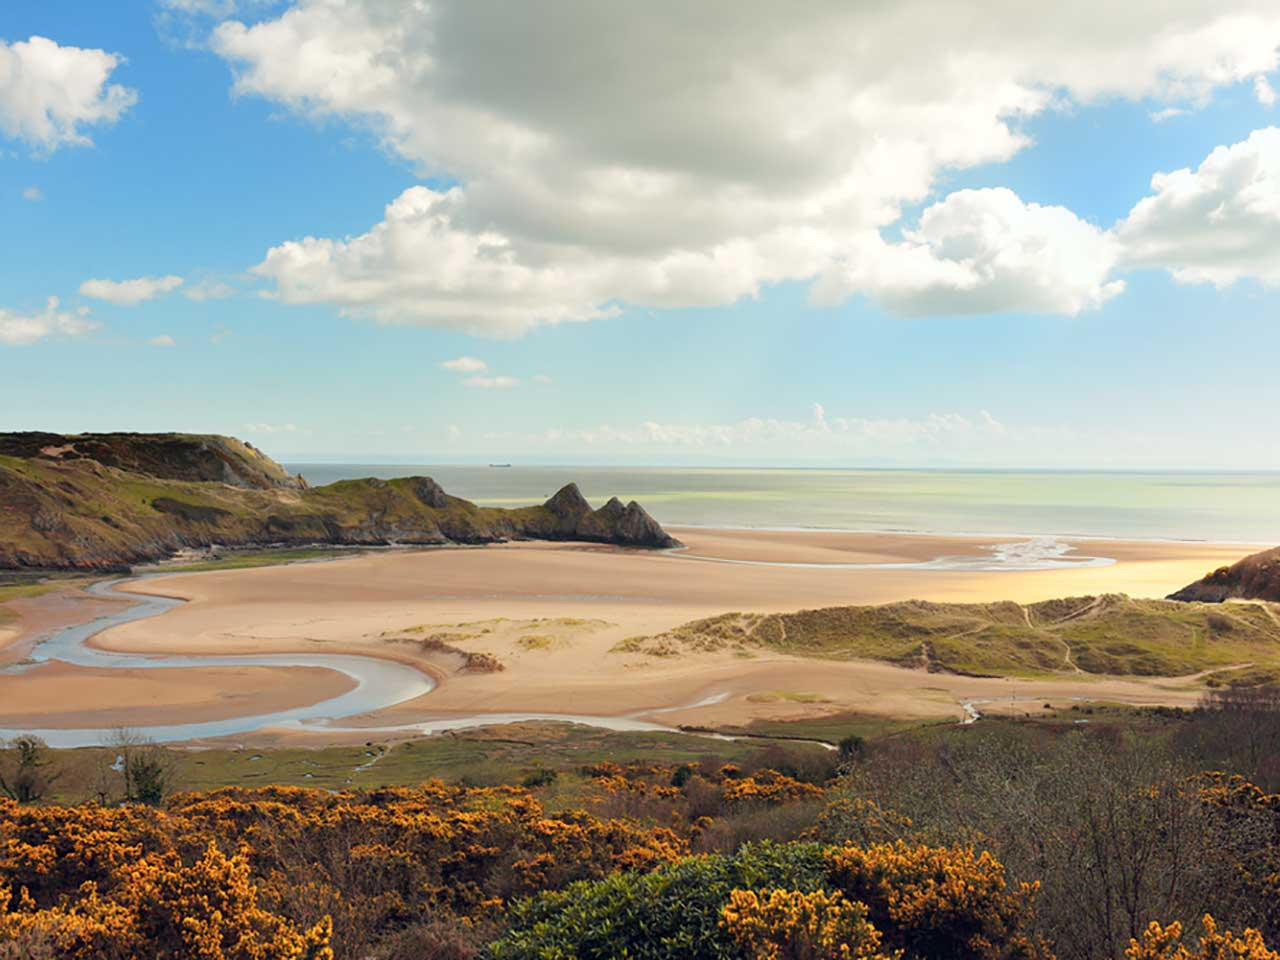 Gower Beach, South Wales